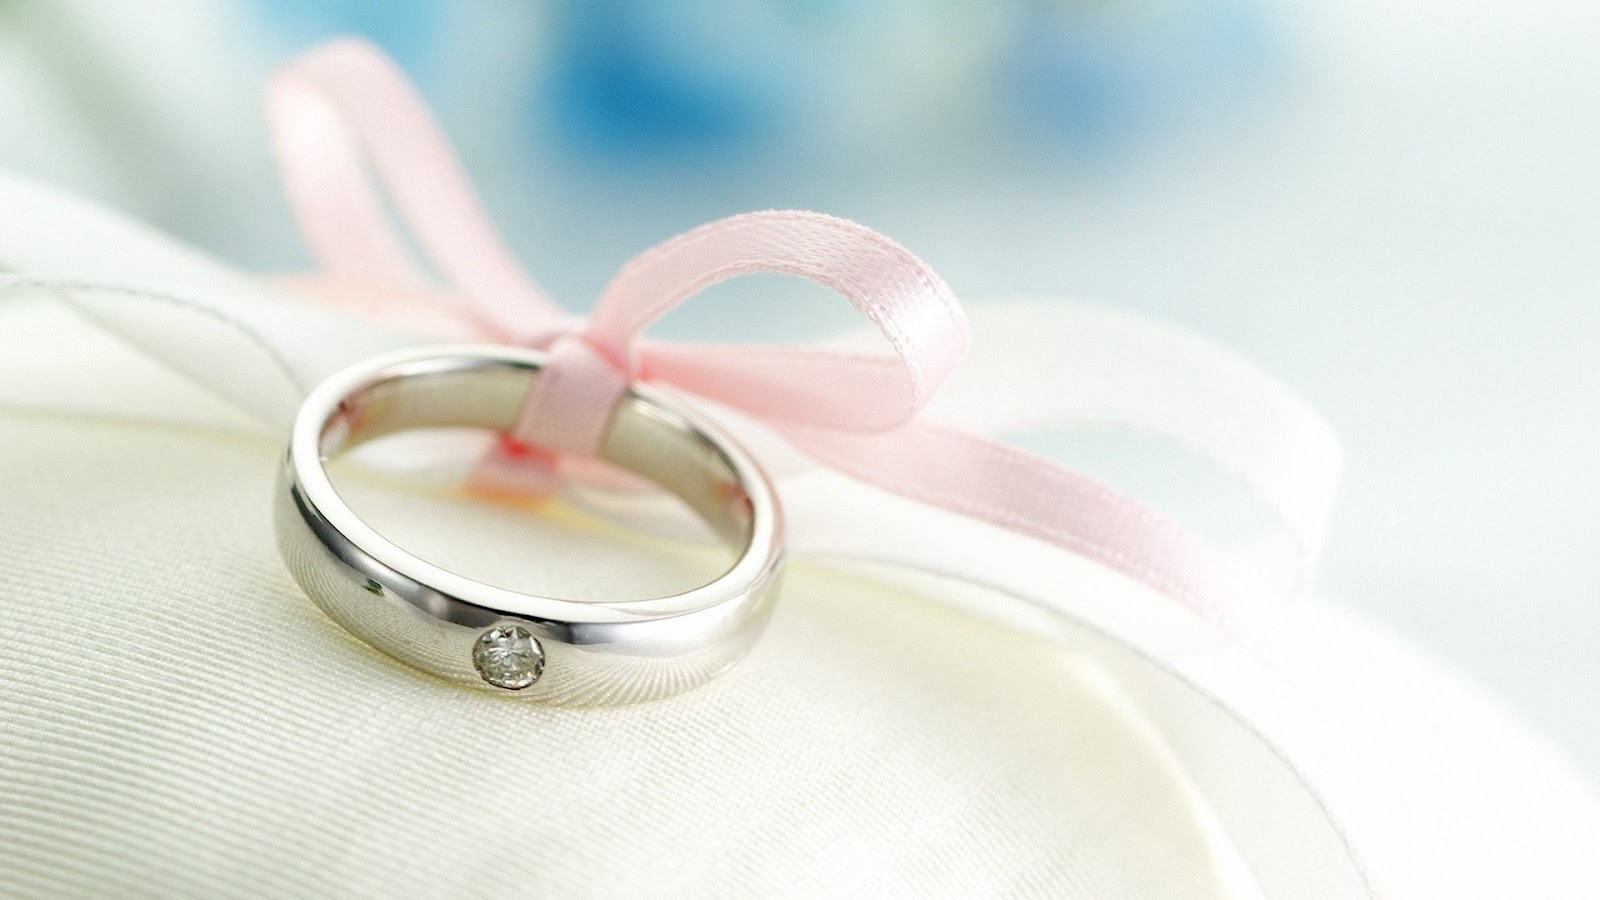 I Love Ring Photos Hd Download